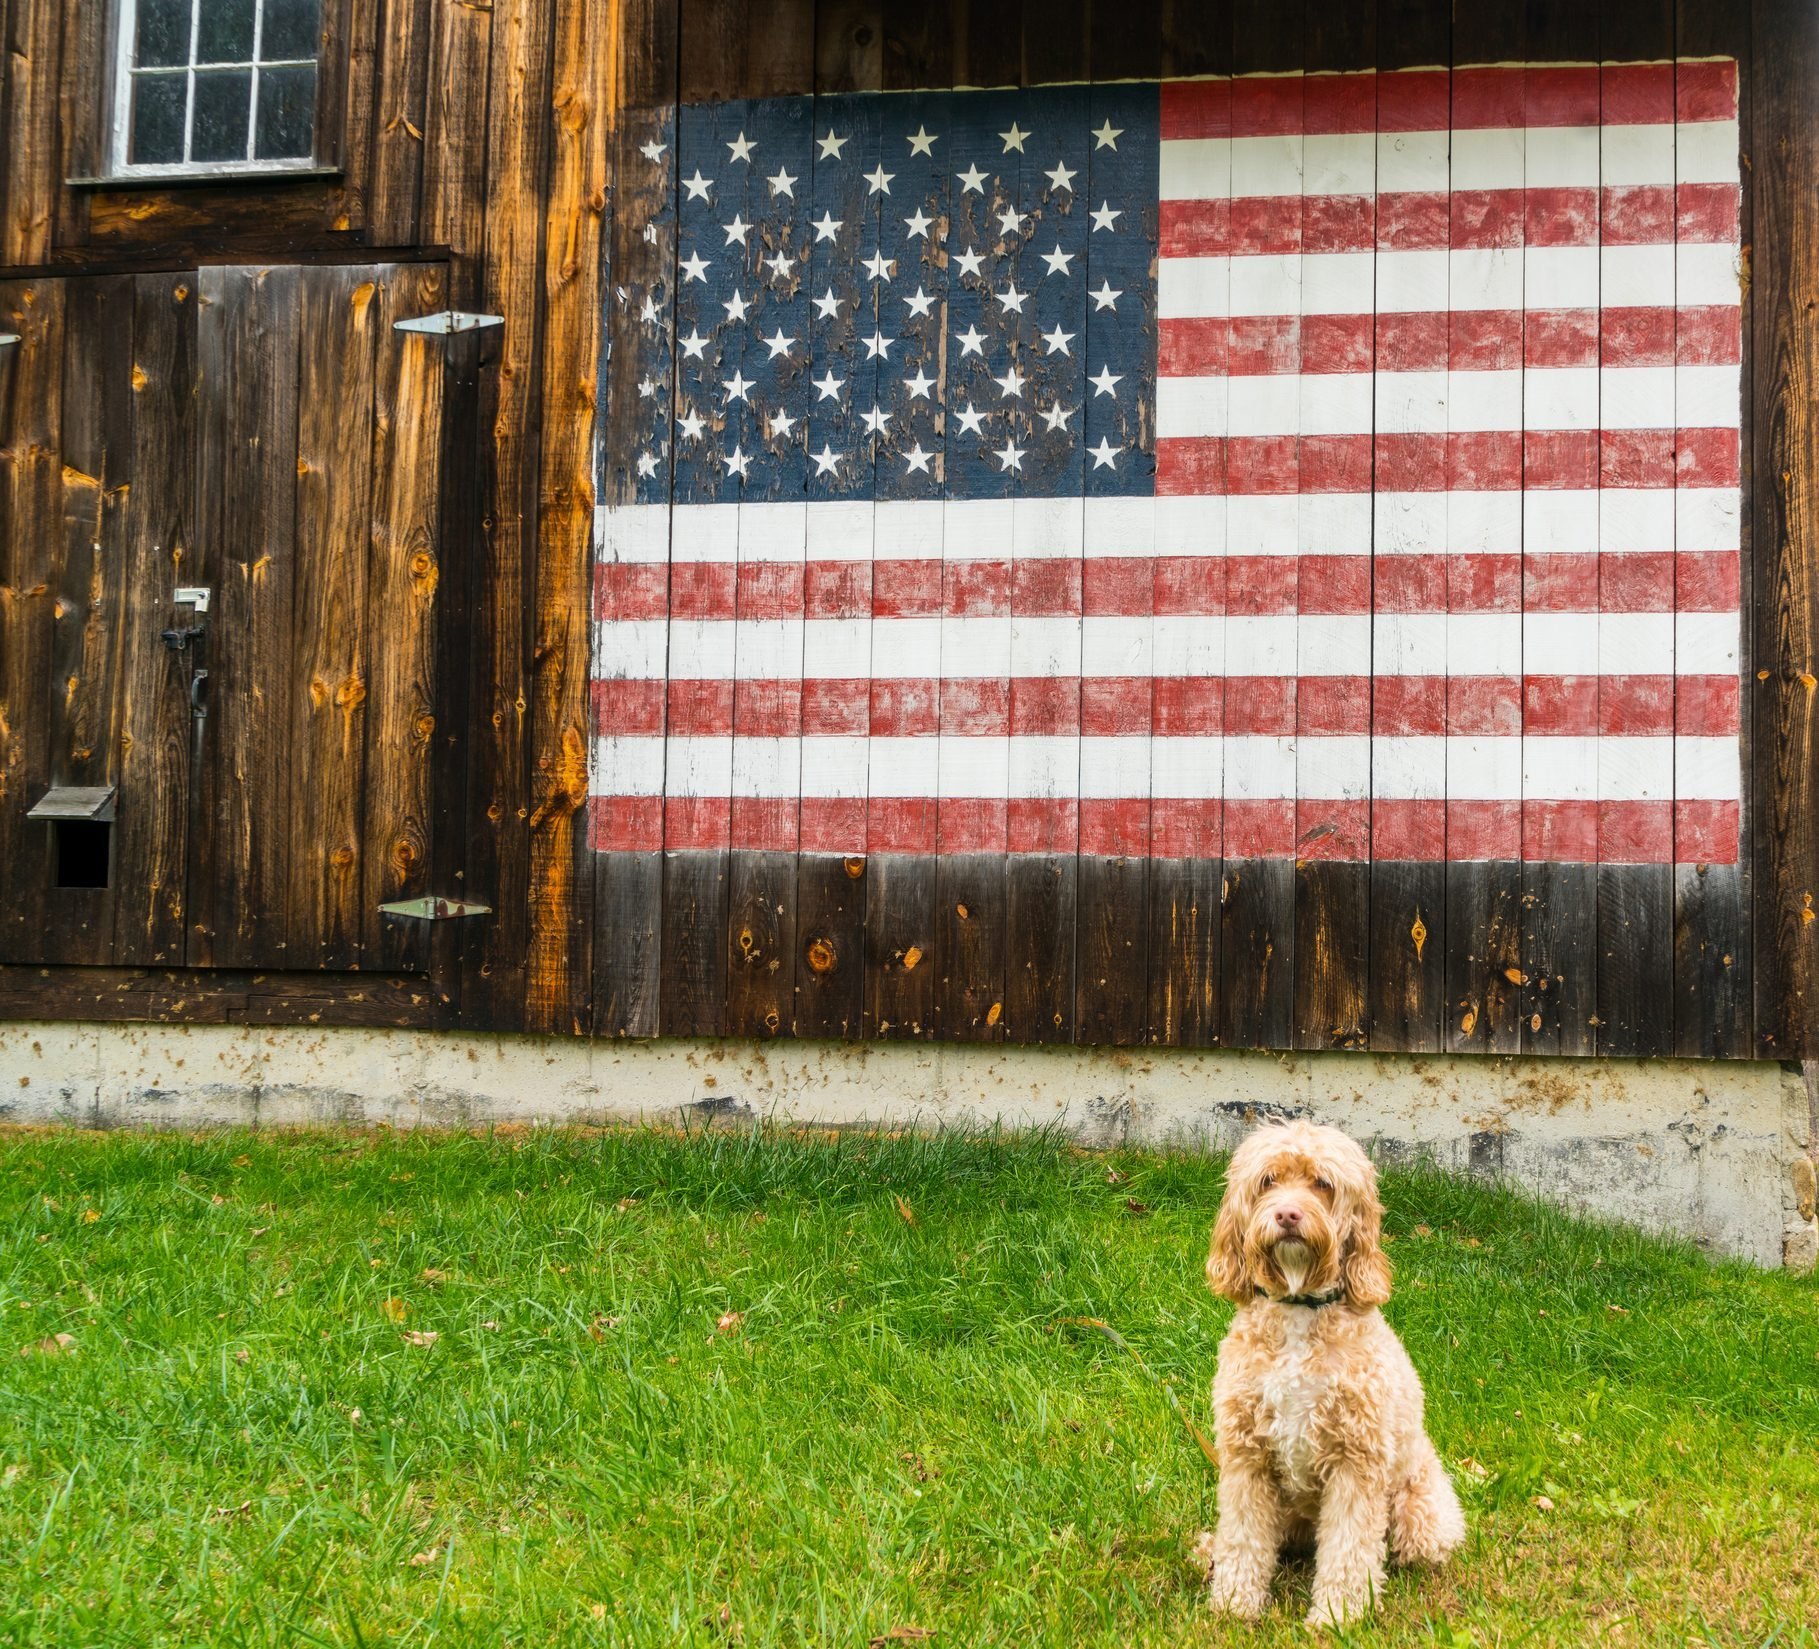 A cute puppy poses in from of a barn with painted American flag.